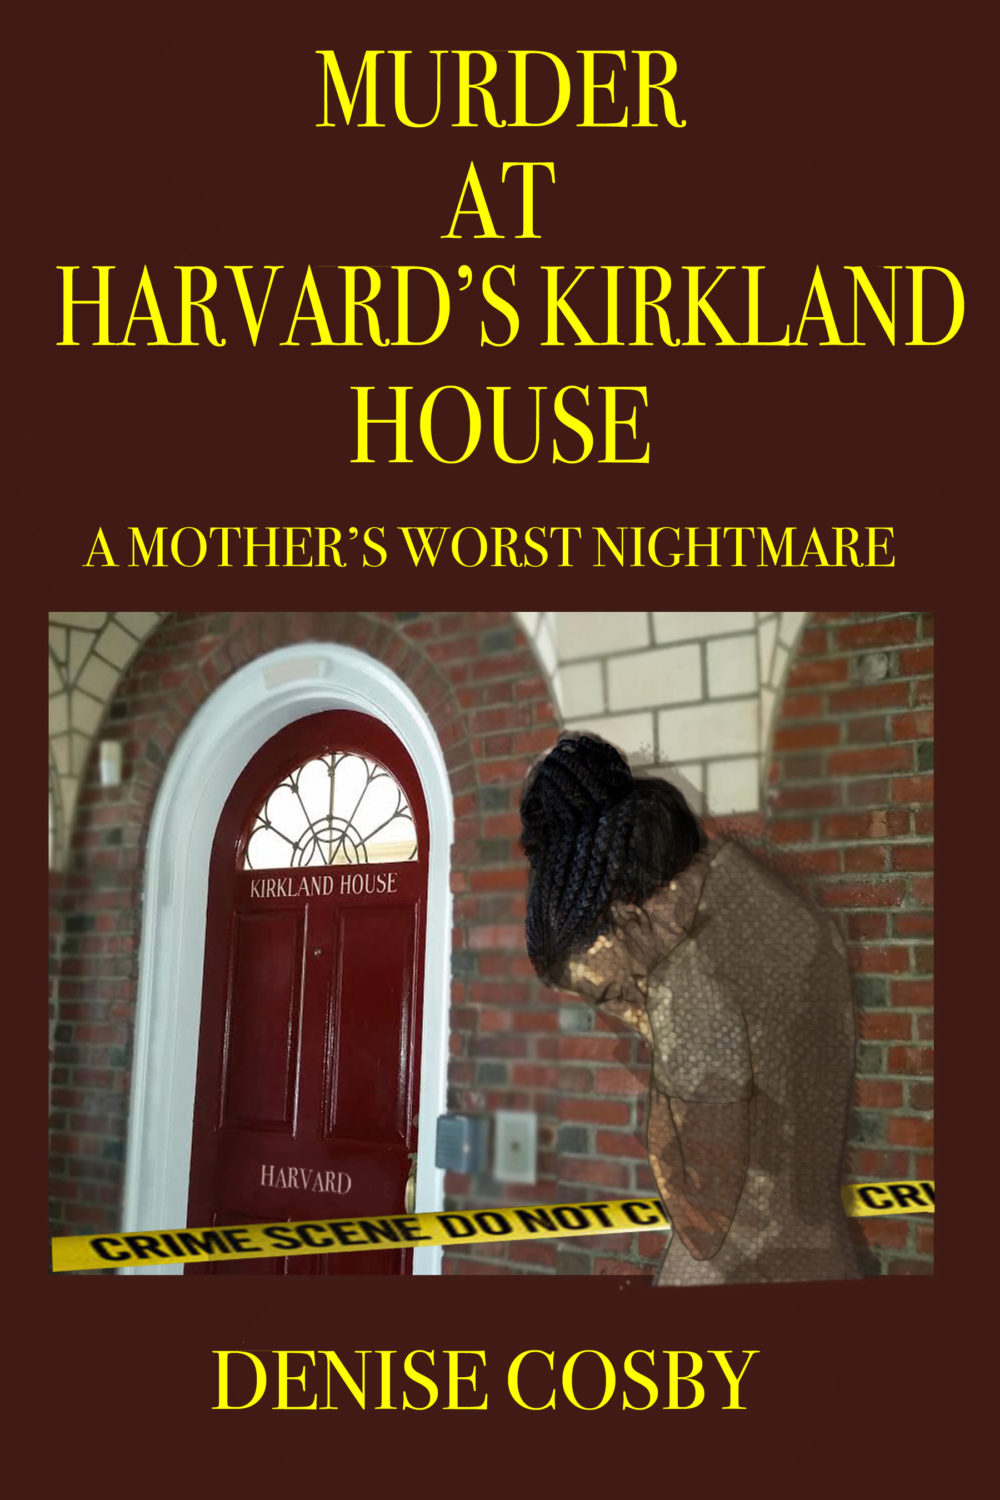 """""""Murder at Harvard's Kirkland House: A Mother's Worst Nightmare"""" by Denise Cosby. (Courtesy of Denise Cosby)."""